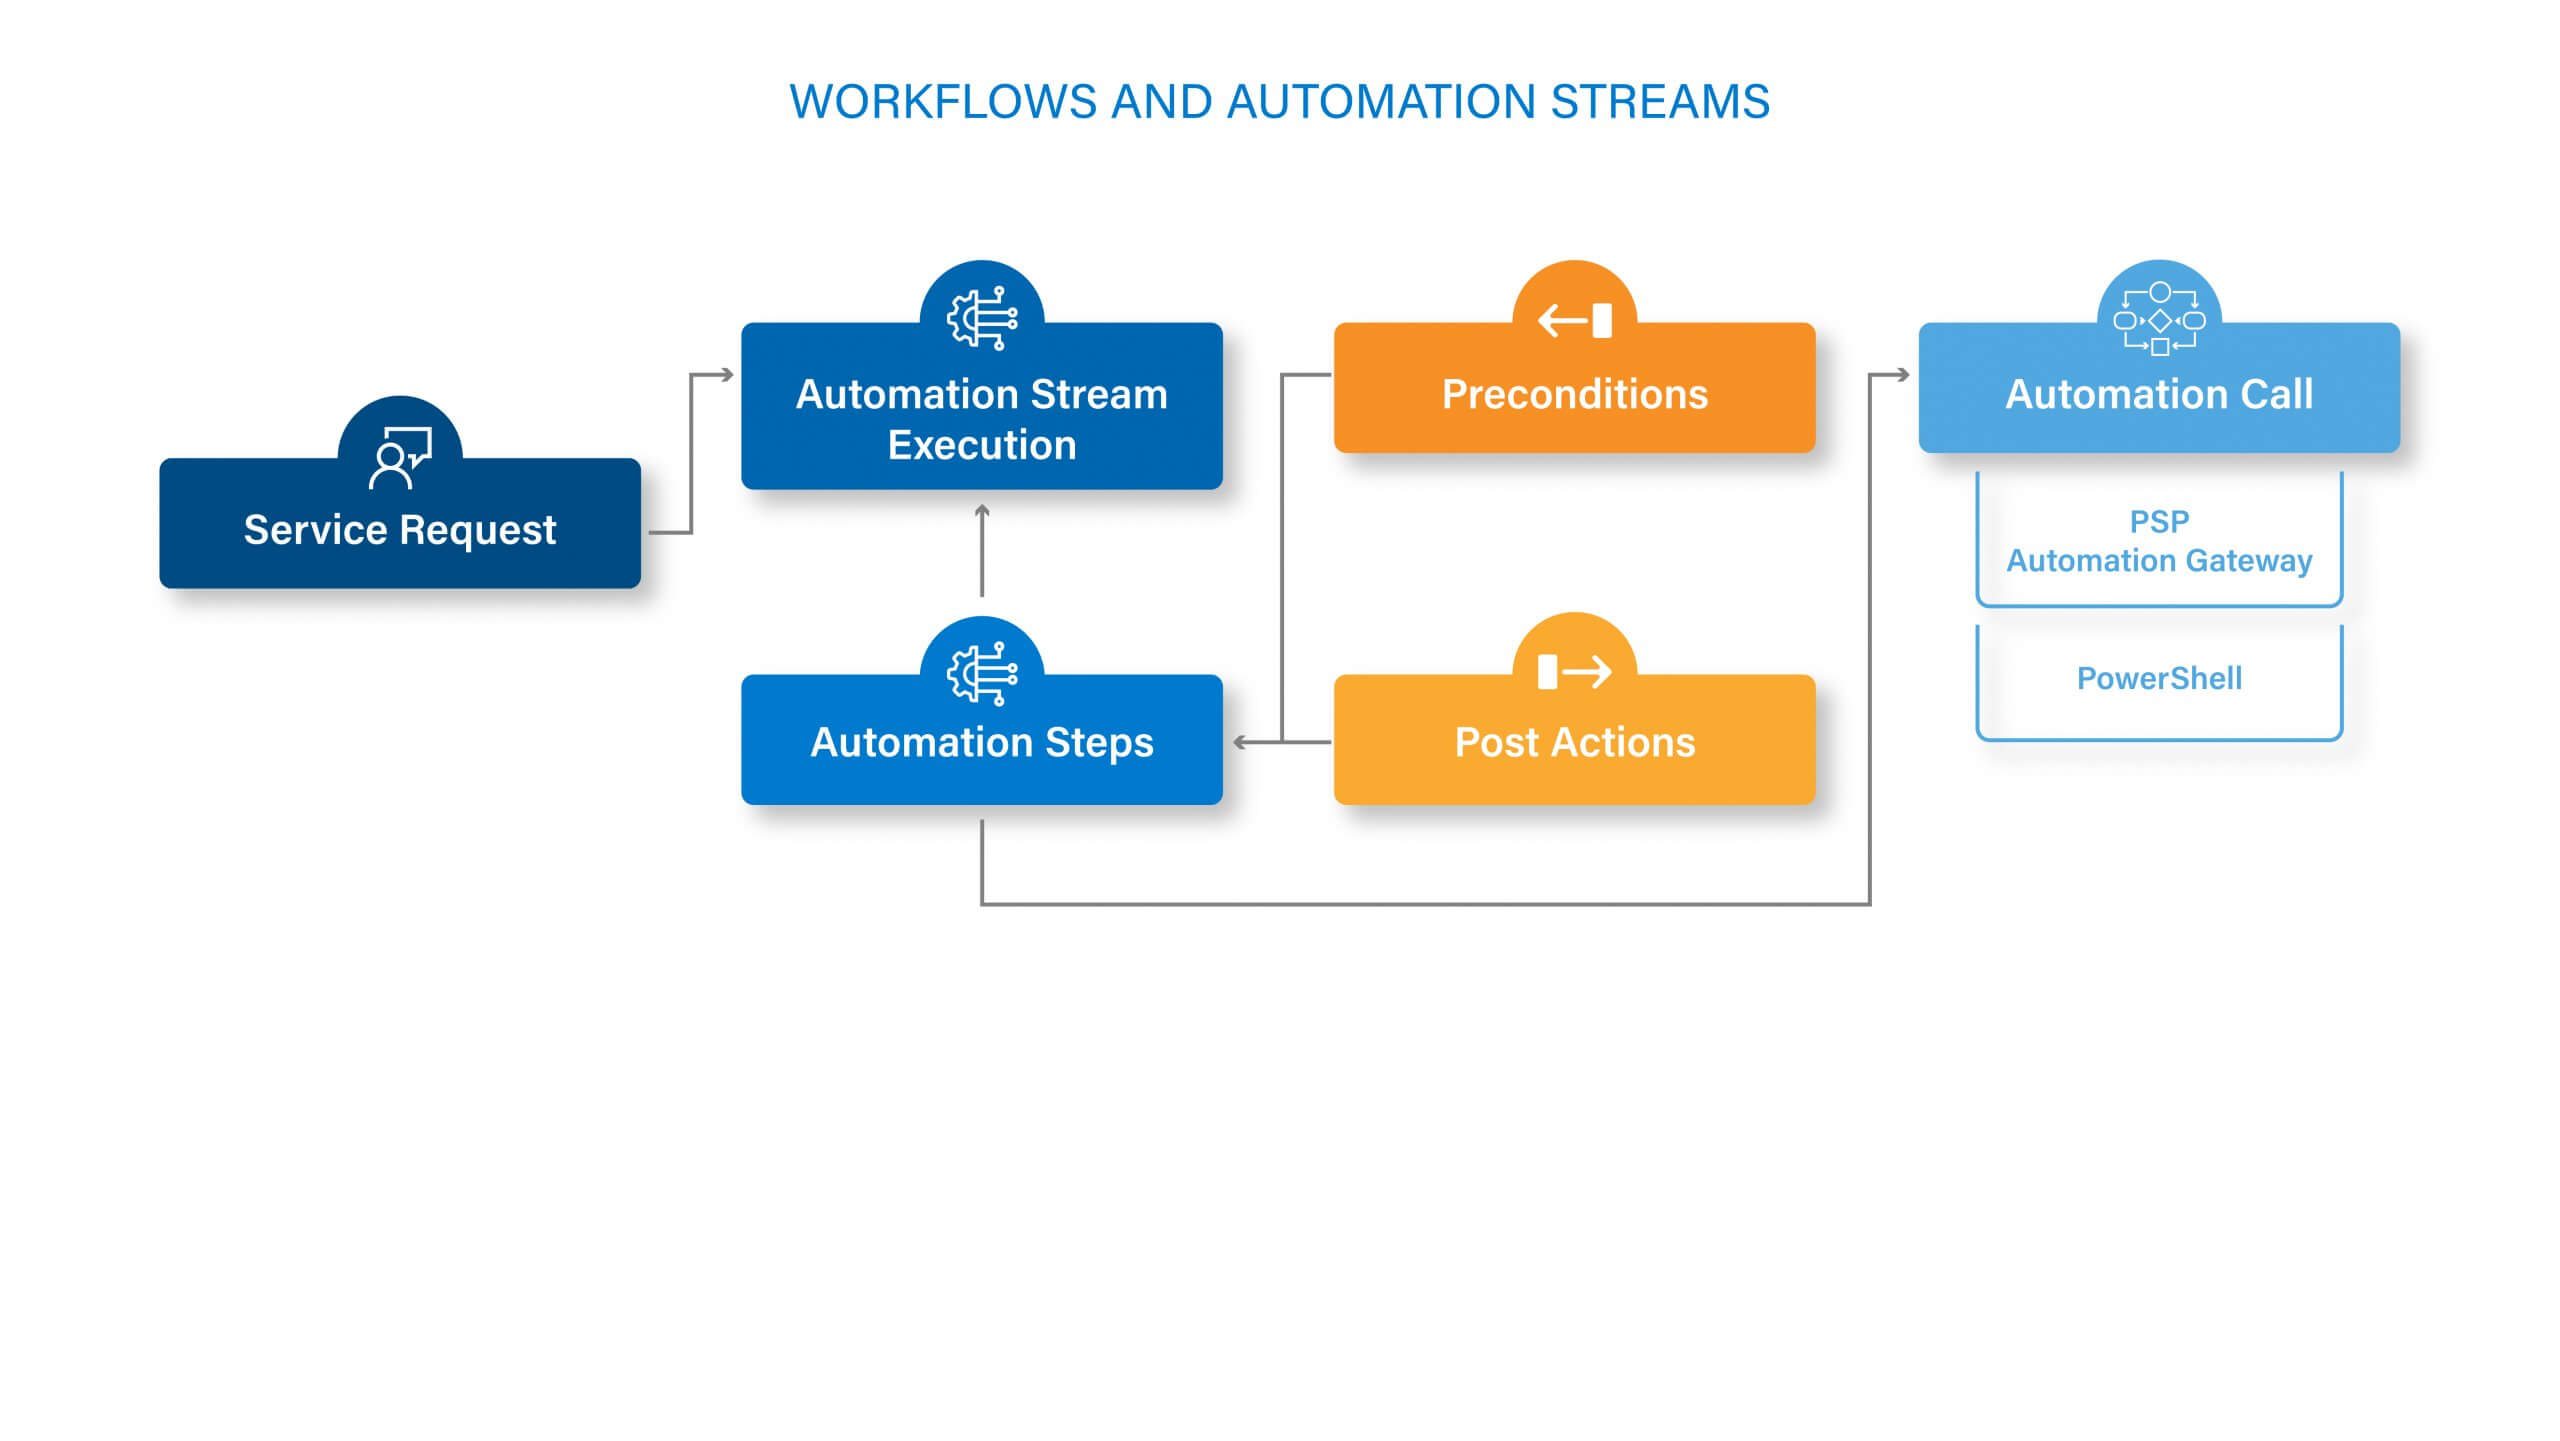 Workflows and Automation Streams Diagrams